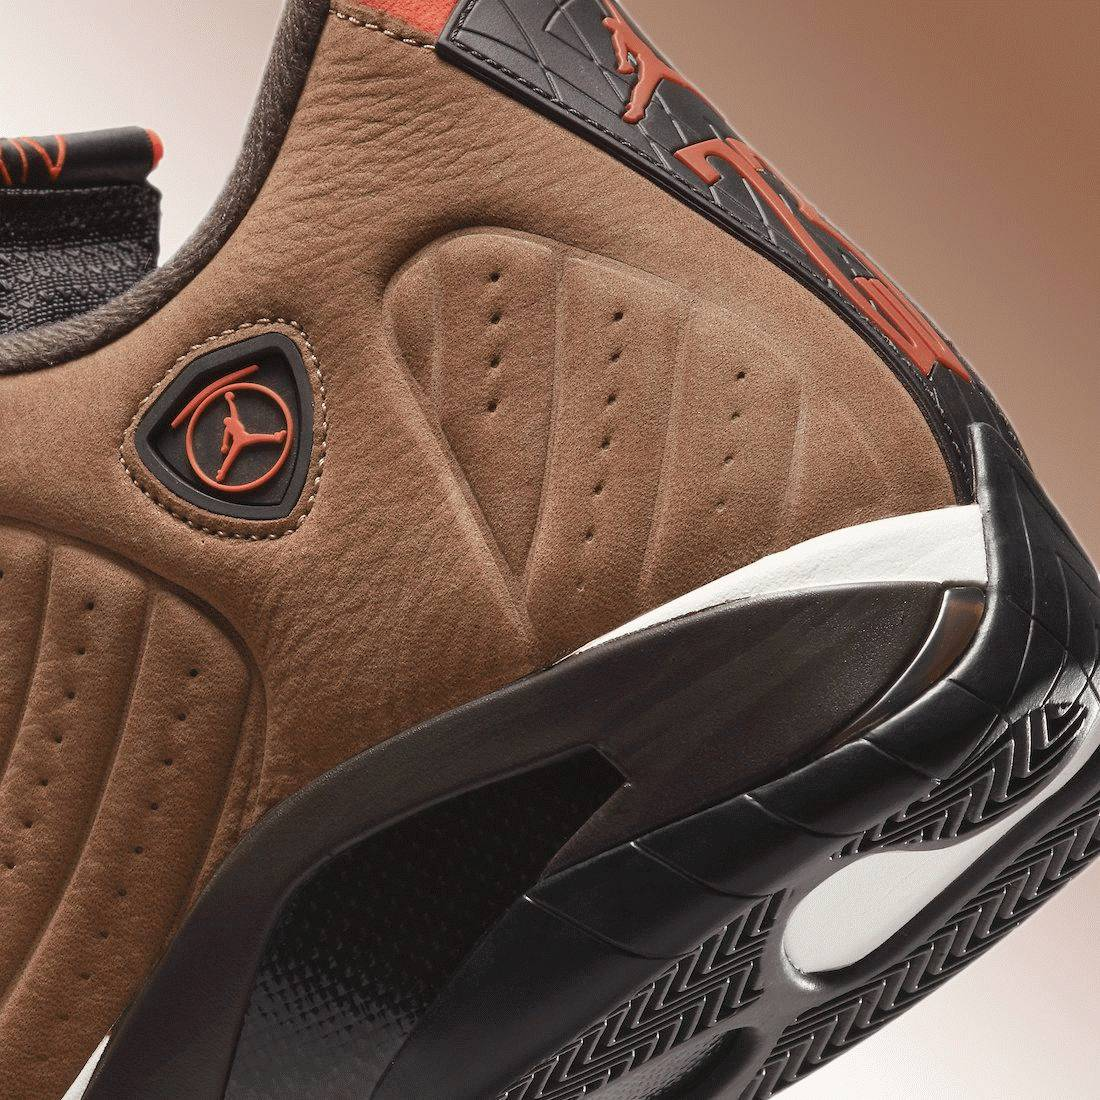 Air-Jordan-14-Winterized-Archaeo-Brown-DO9406-200-Release-Date-Price-7